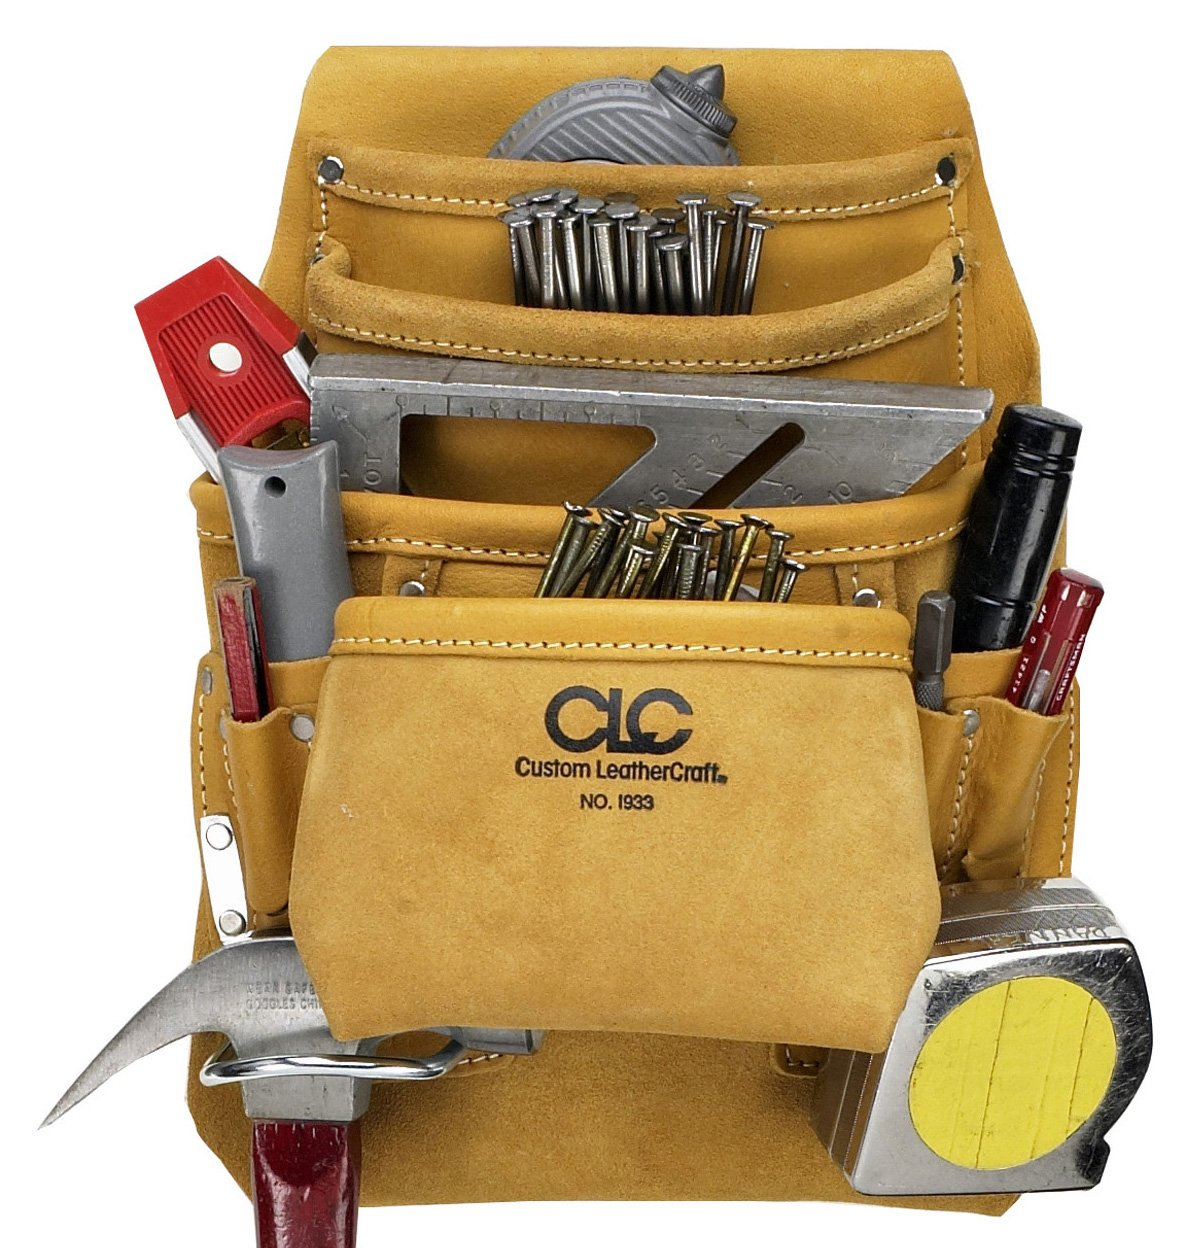 CLC Custom Leathercraft I933 Carpenter's Nail and Tool Bag, Top Grain, 10-Pocket